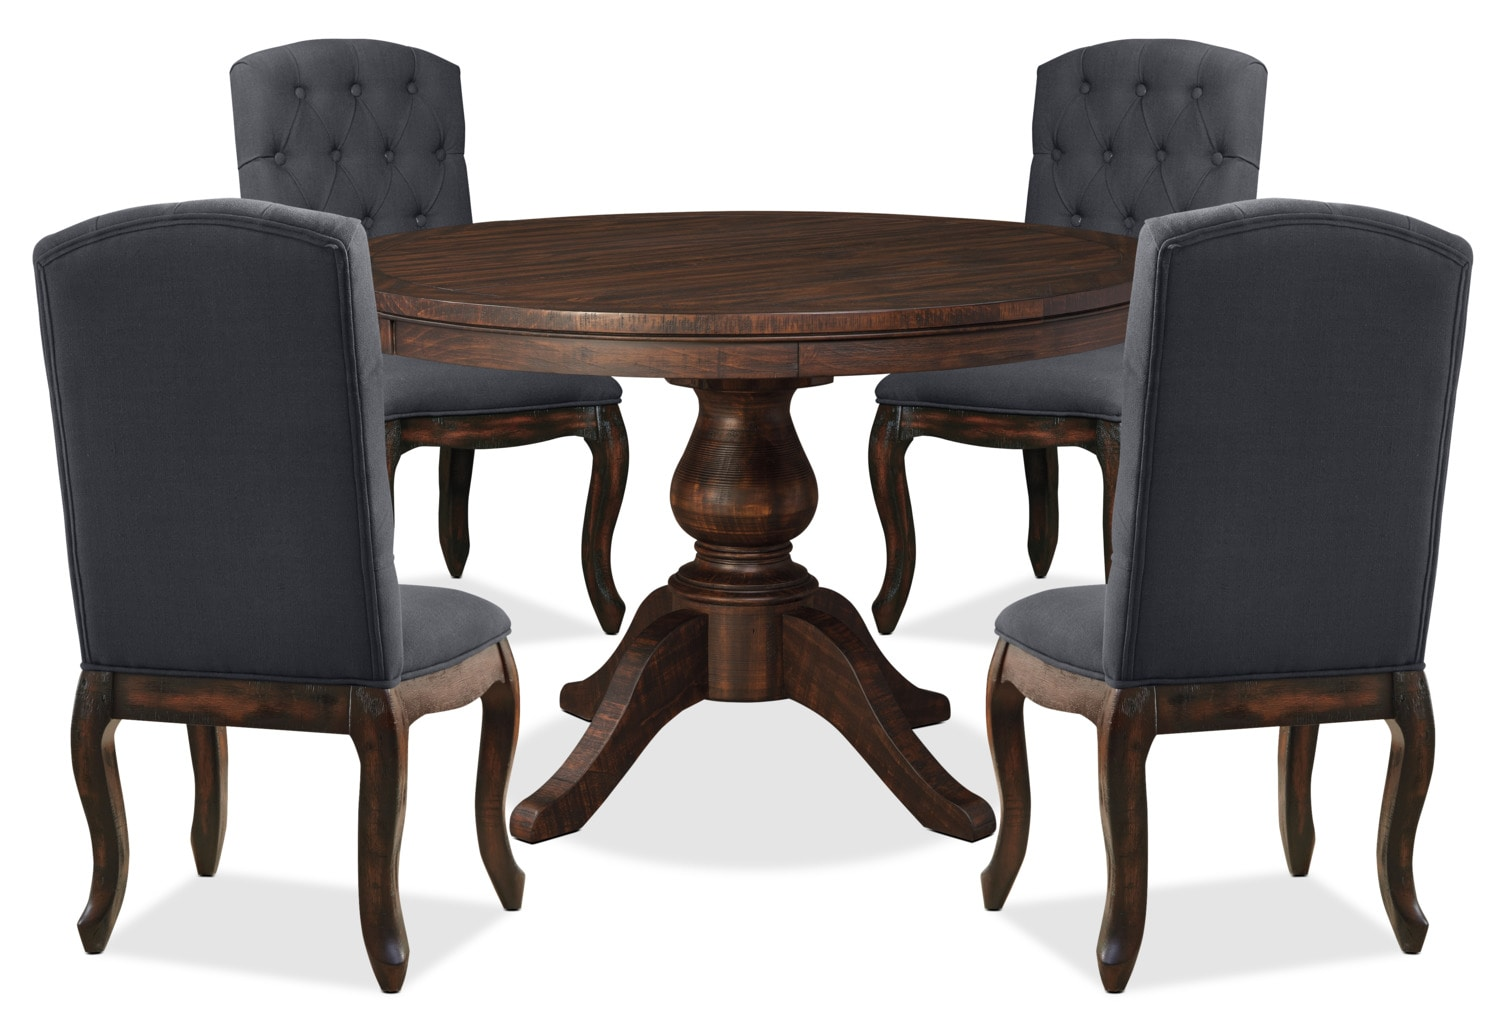 Trudell 5-Piece Round Dining Package with Upholstered Chairs